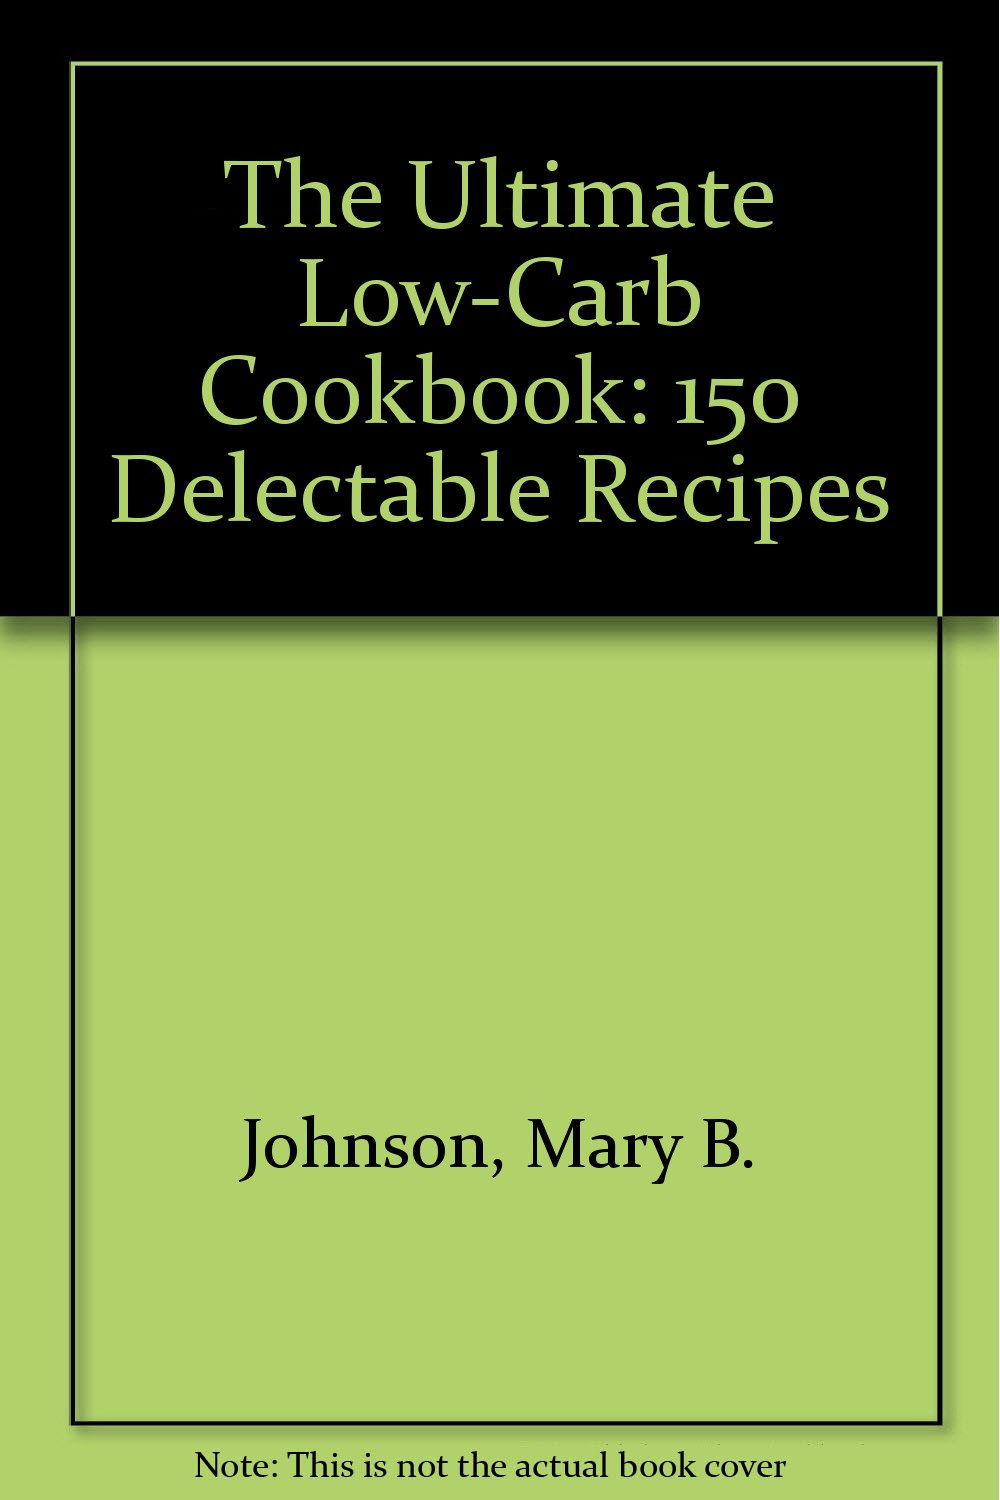 The Ultimate Low-Carb Cookbook: 150 Delectable Recipes ebook